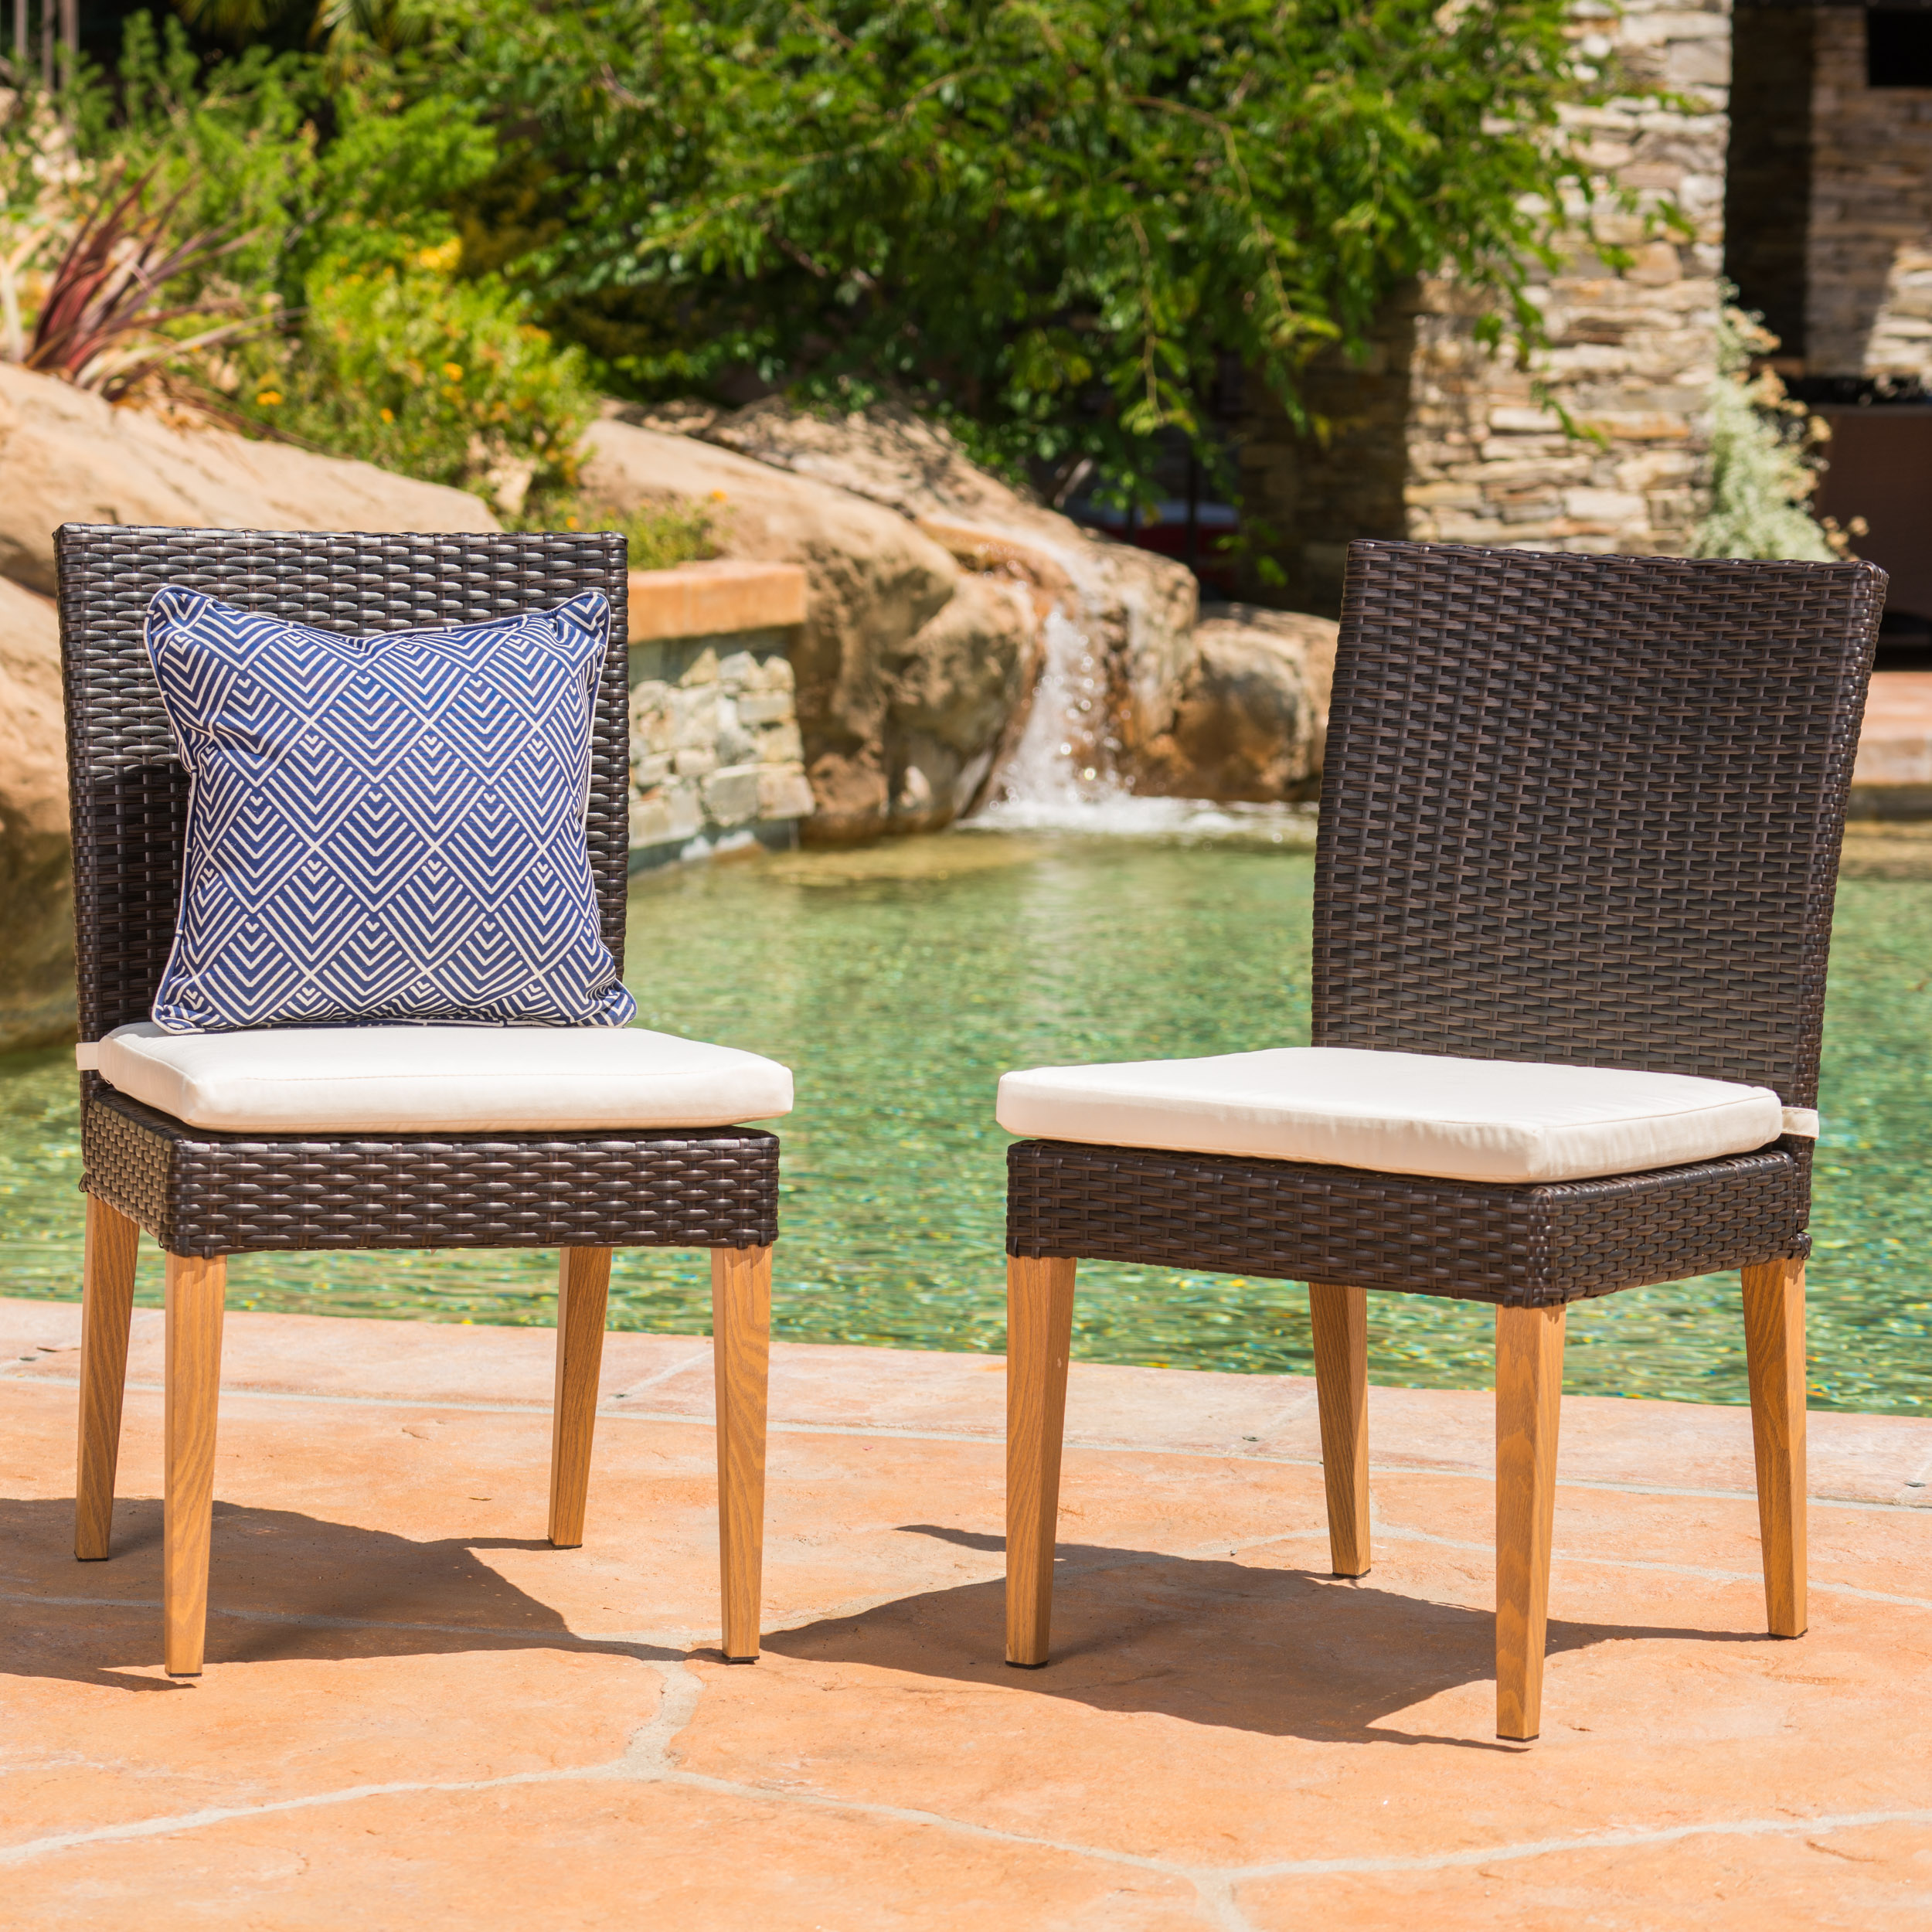 Blythe Outdoor Wicker Dining Chairs with Cushions, Set of 2, Multibrown, Beige